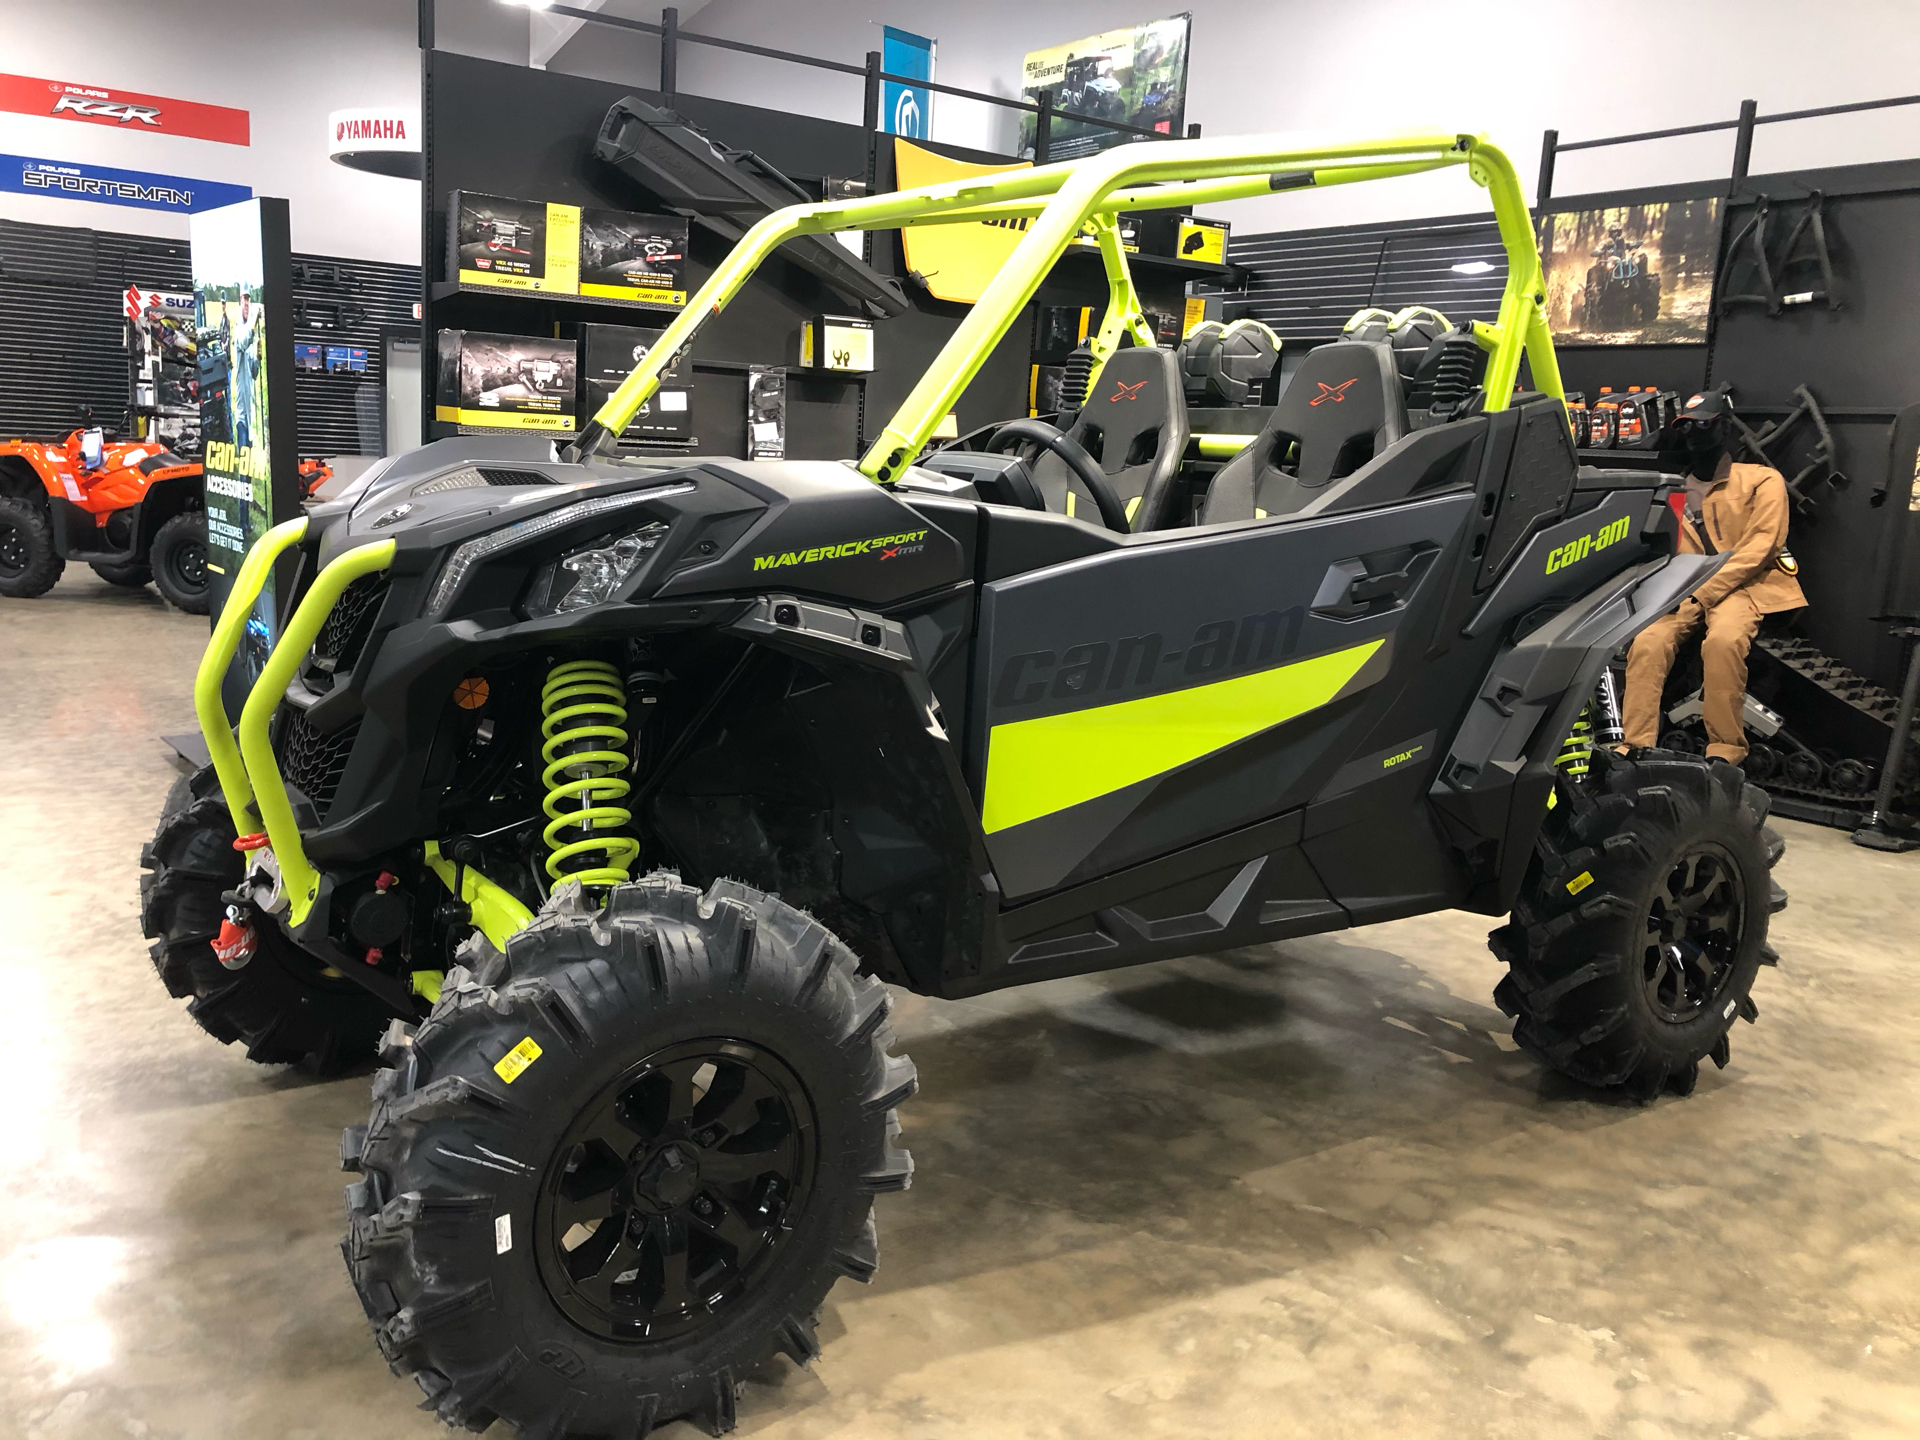 2021 Can-Am Maverick Sport X MR 1000R in Leland, Mississippi - Photo 1